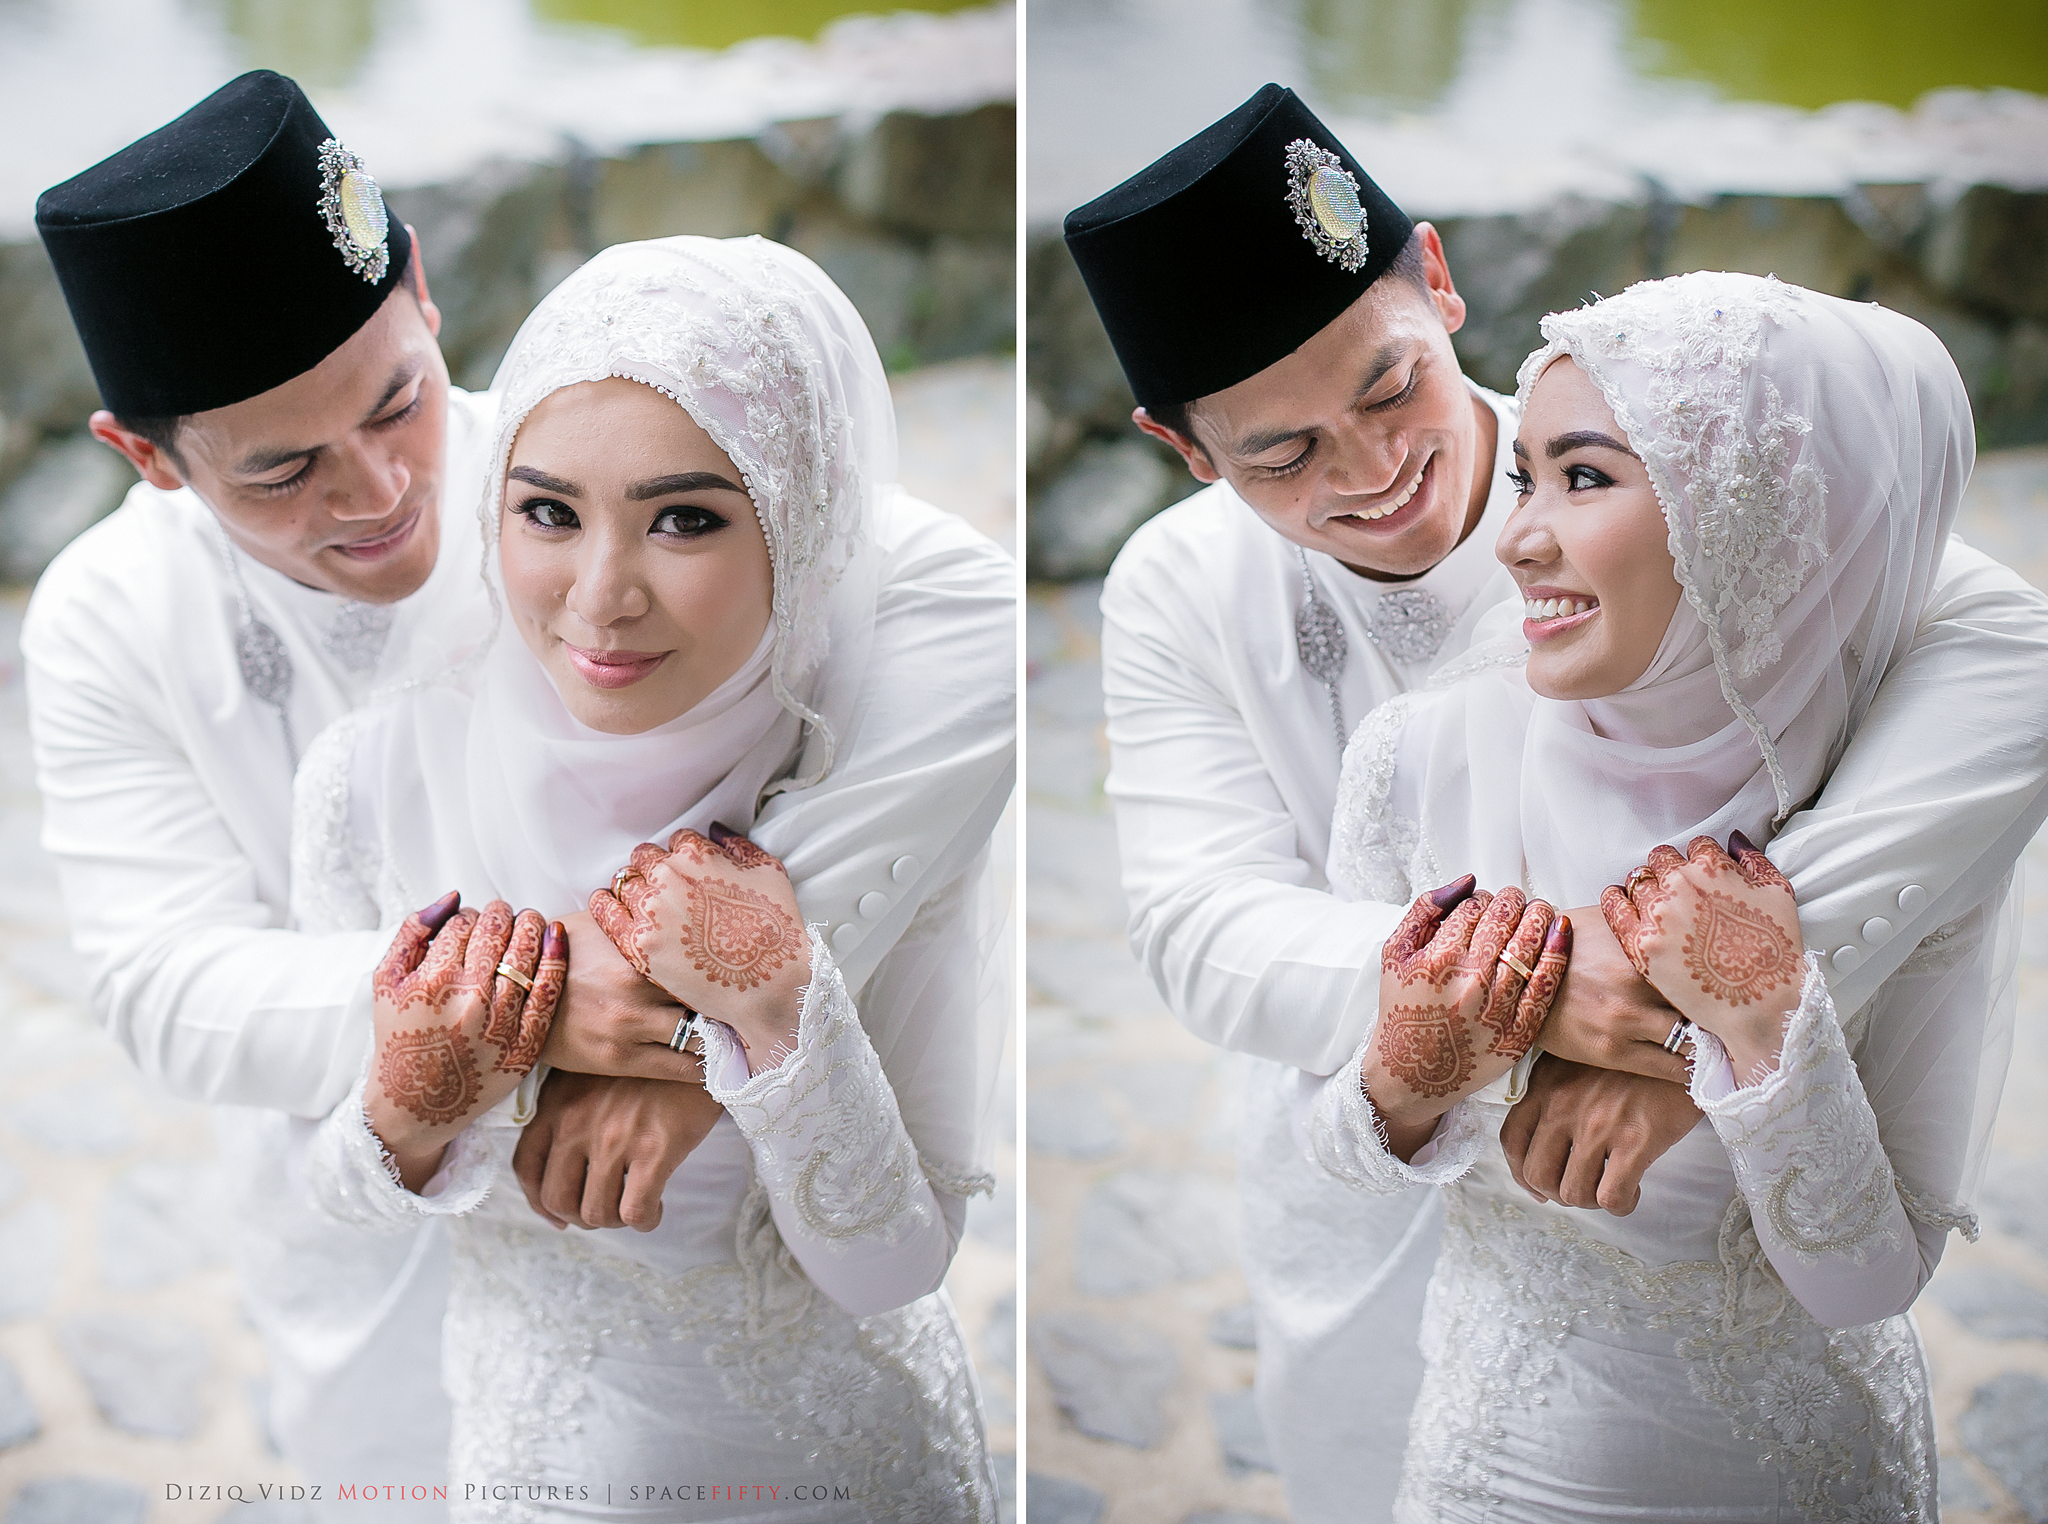 Issyaz wedding invitations